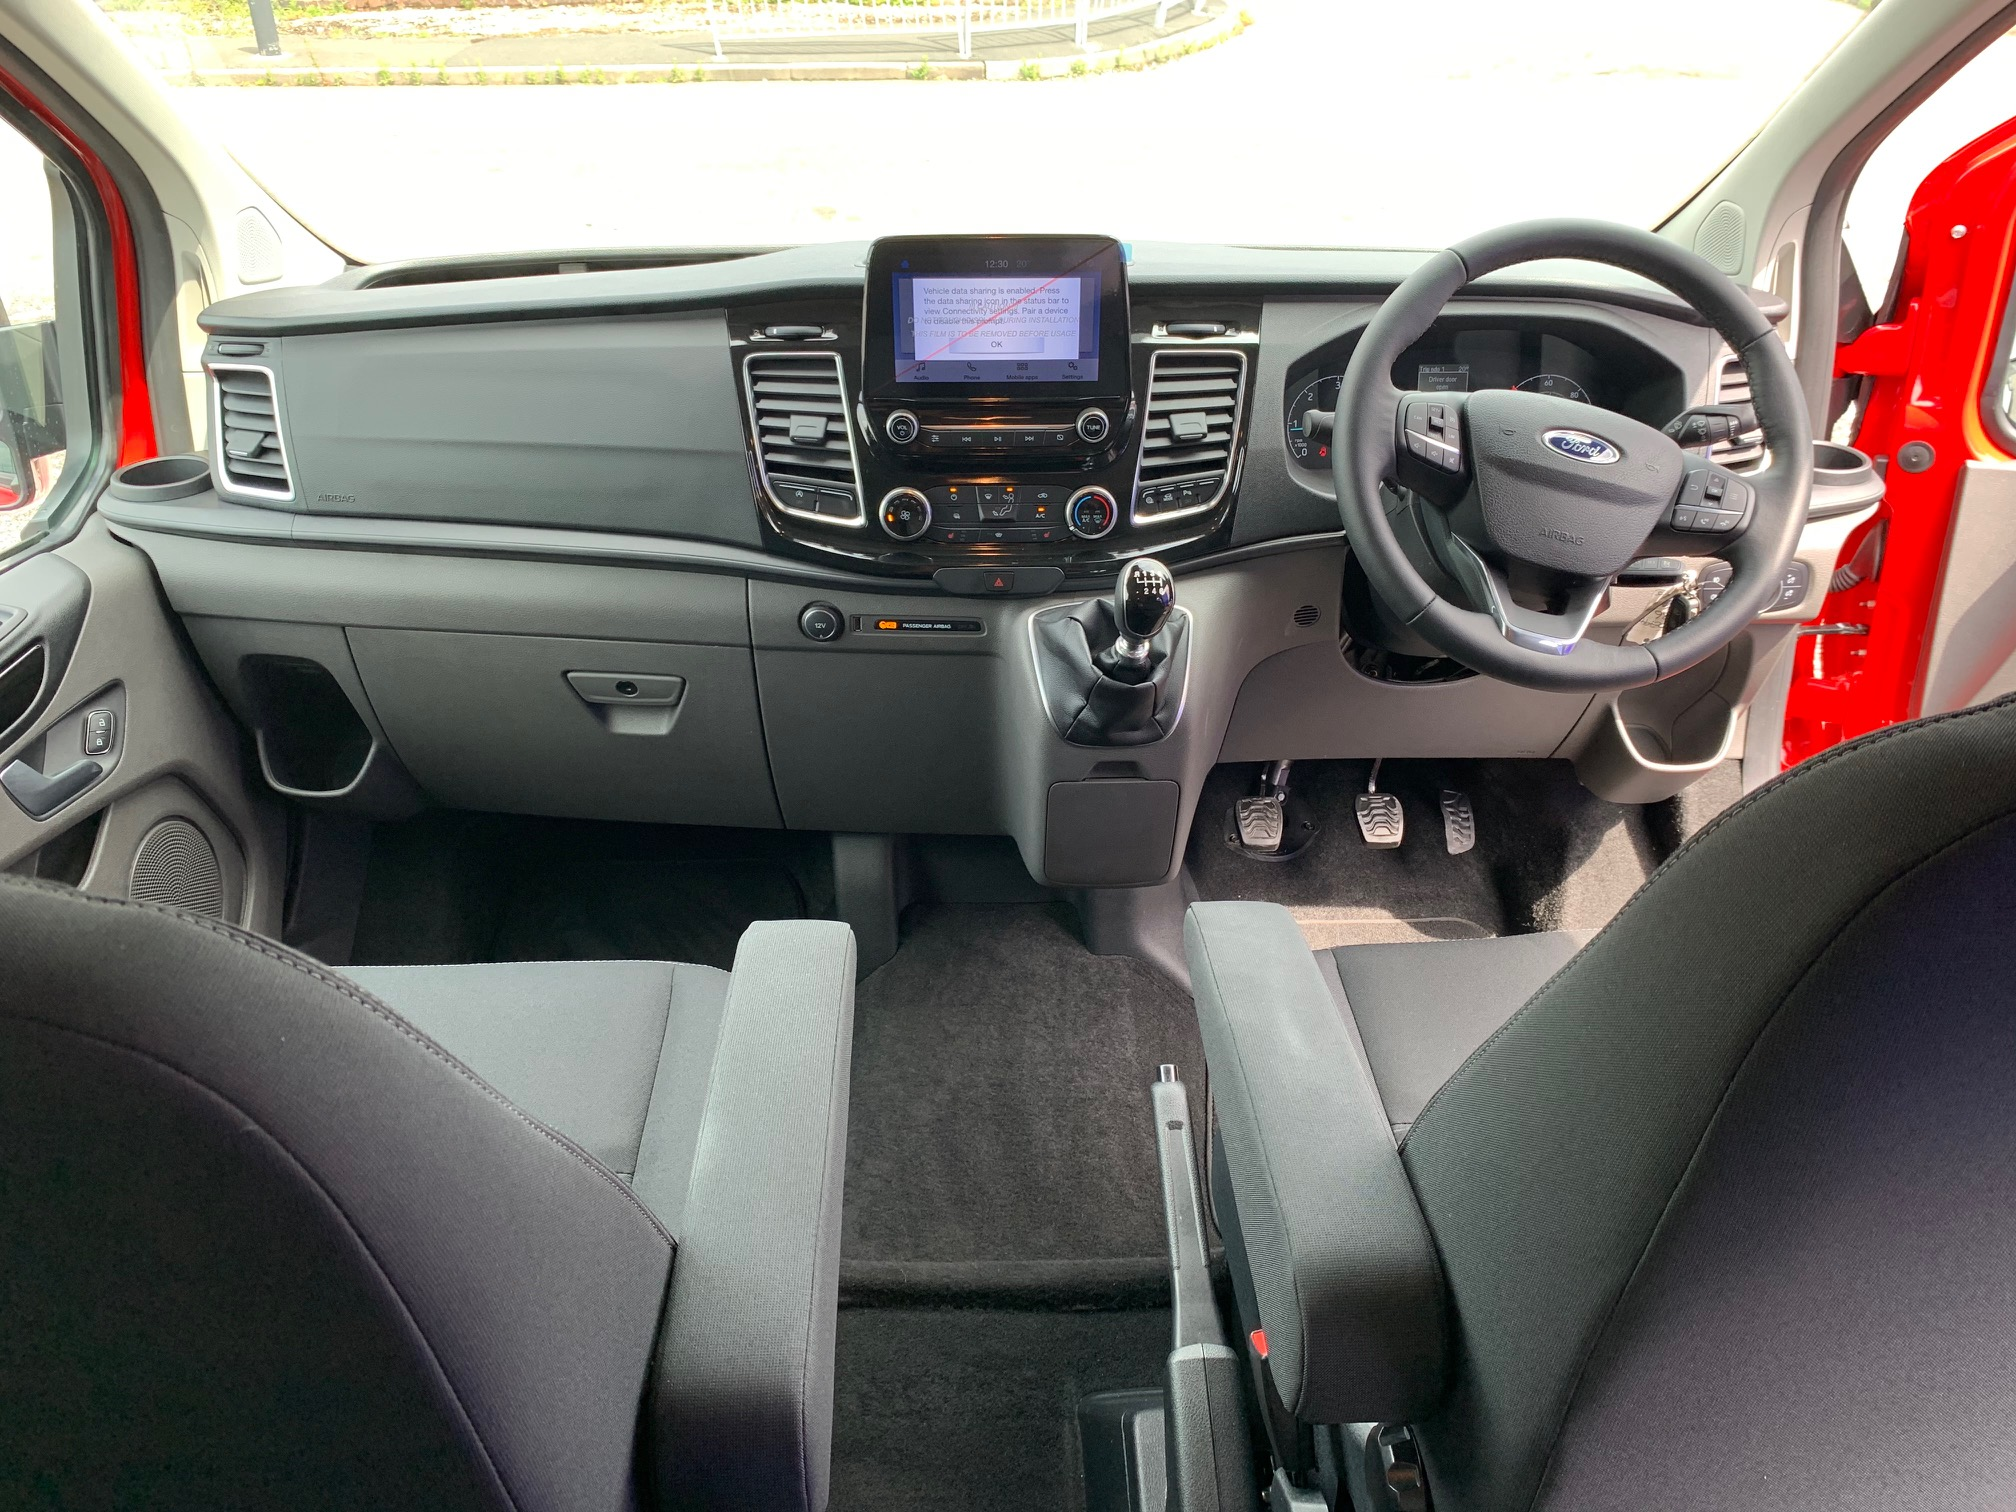 IMG_5707.jpg - Inferno X 320 L2 Double Cab In Van 2.0tdci 130 Limited